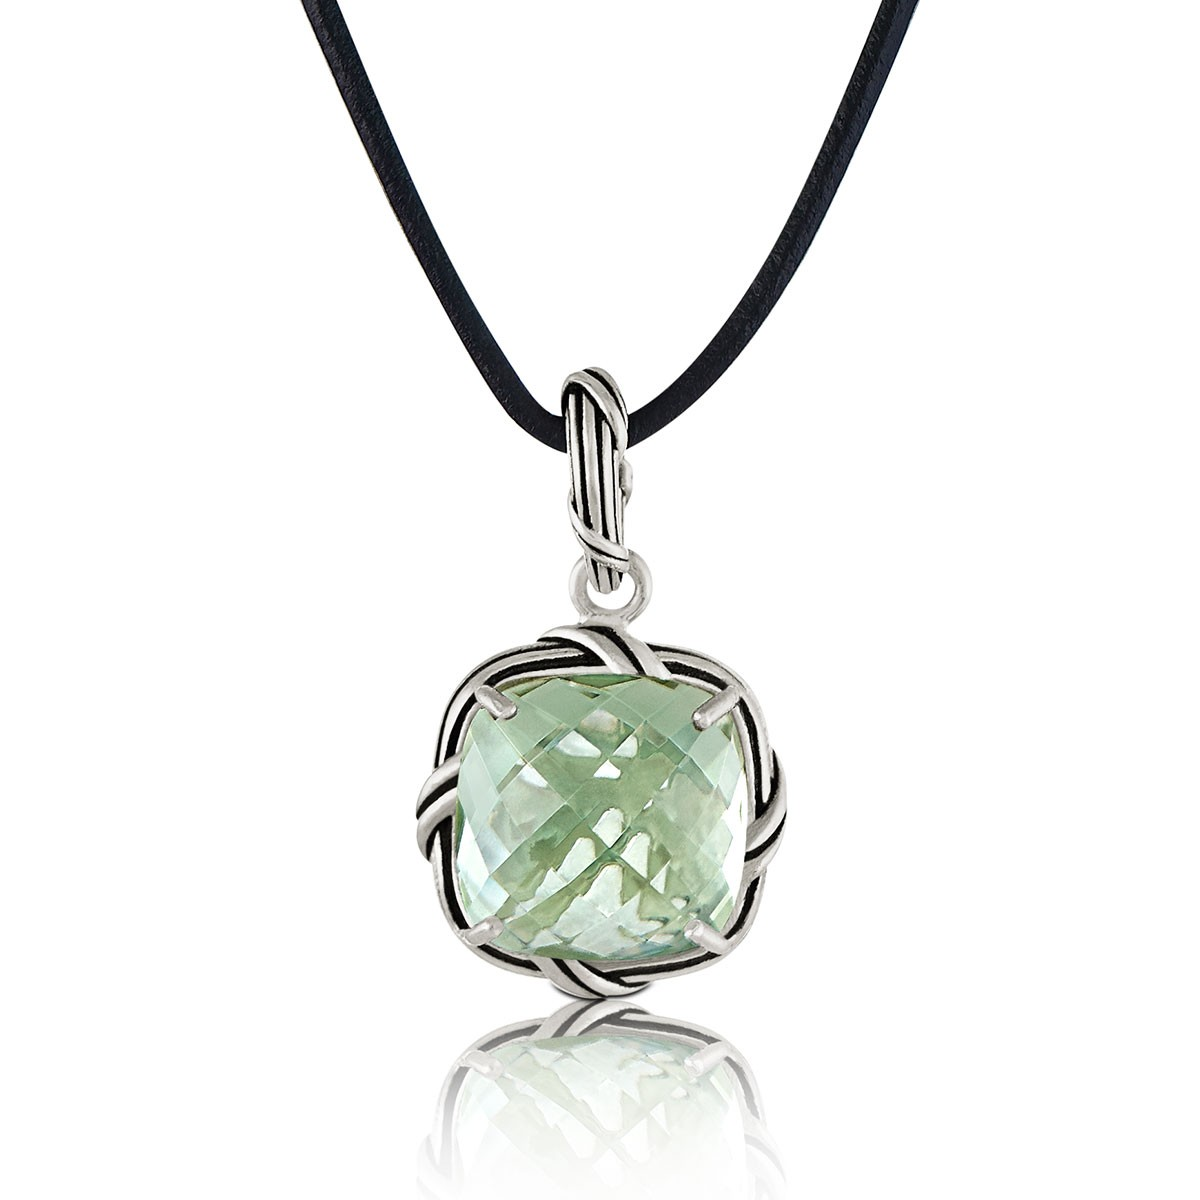 Fantasies Prasiolite Necklace in sterling silver and leather